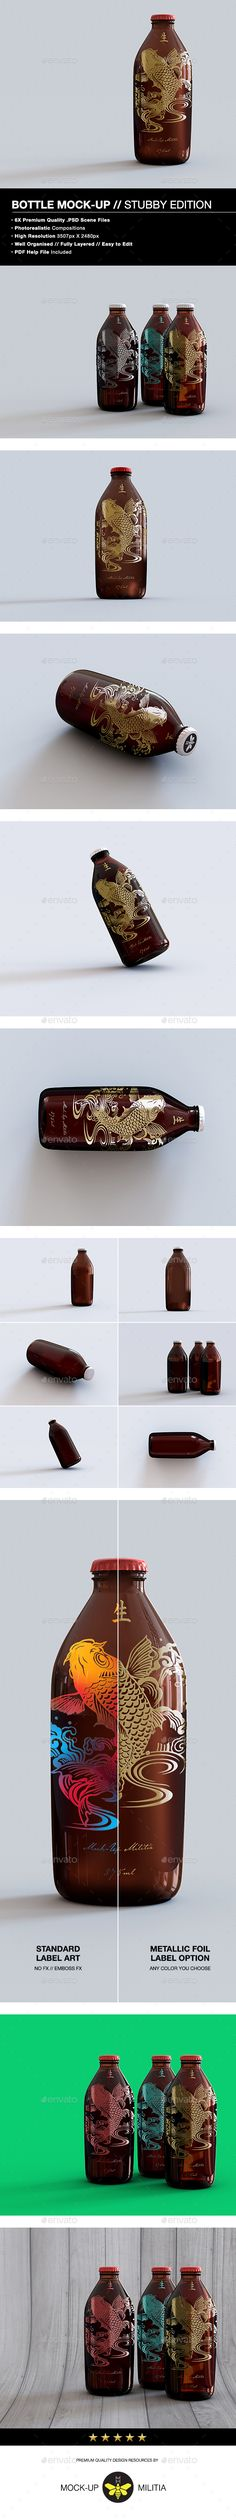 Beer Bottle Mock-Up by Mock-Up-Militia This high-quality, high-resolution premium amber glass stubby bottle mock-up